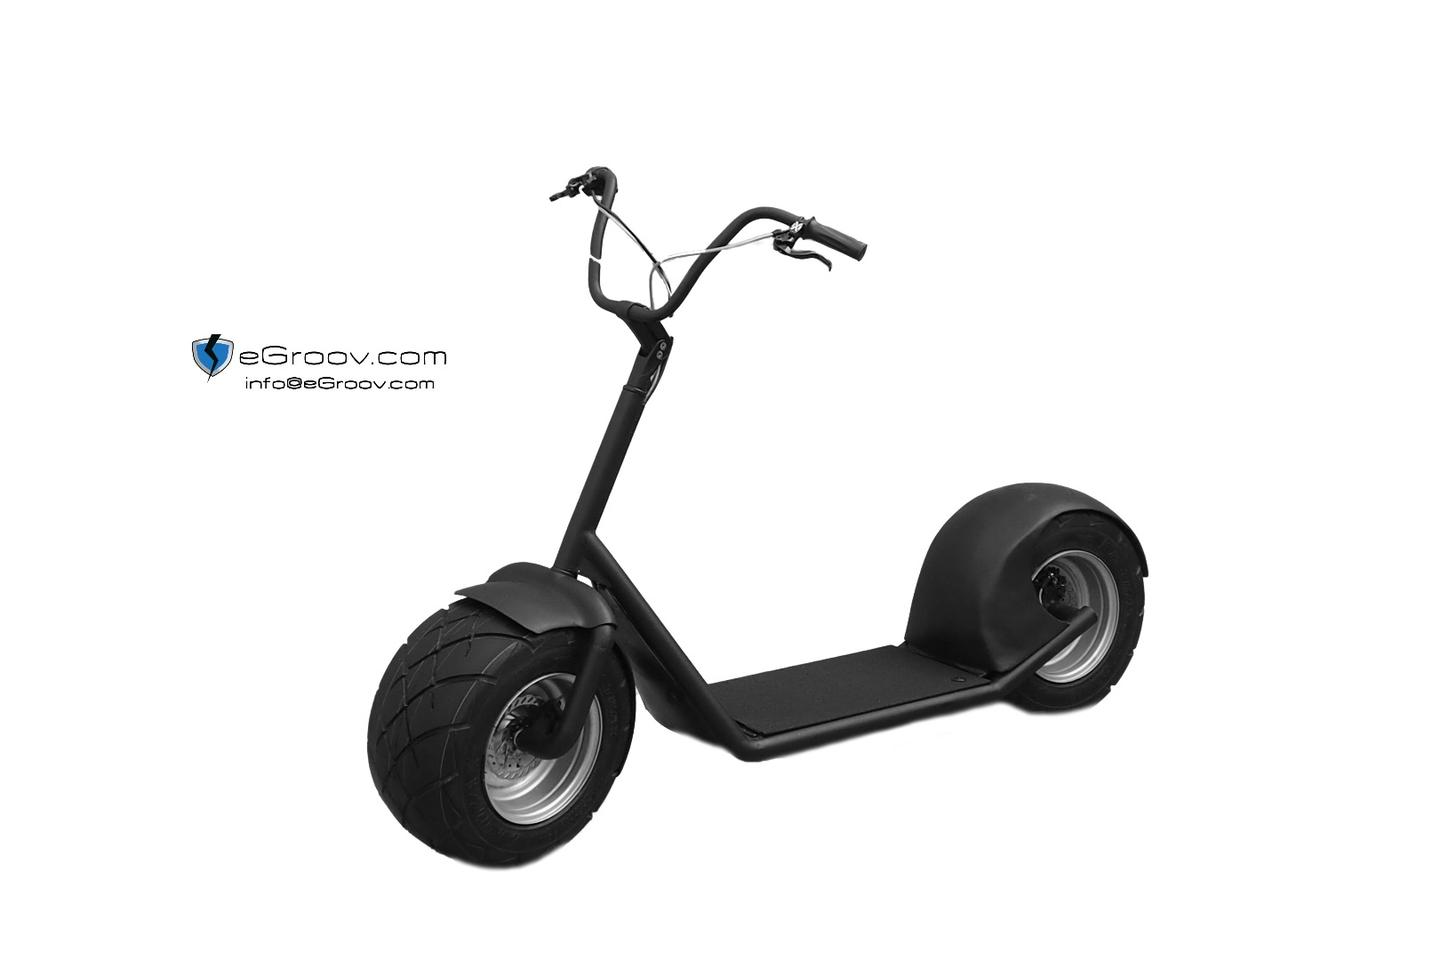 The eGroov has two powered wheels